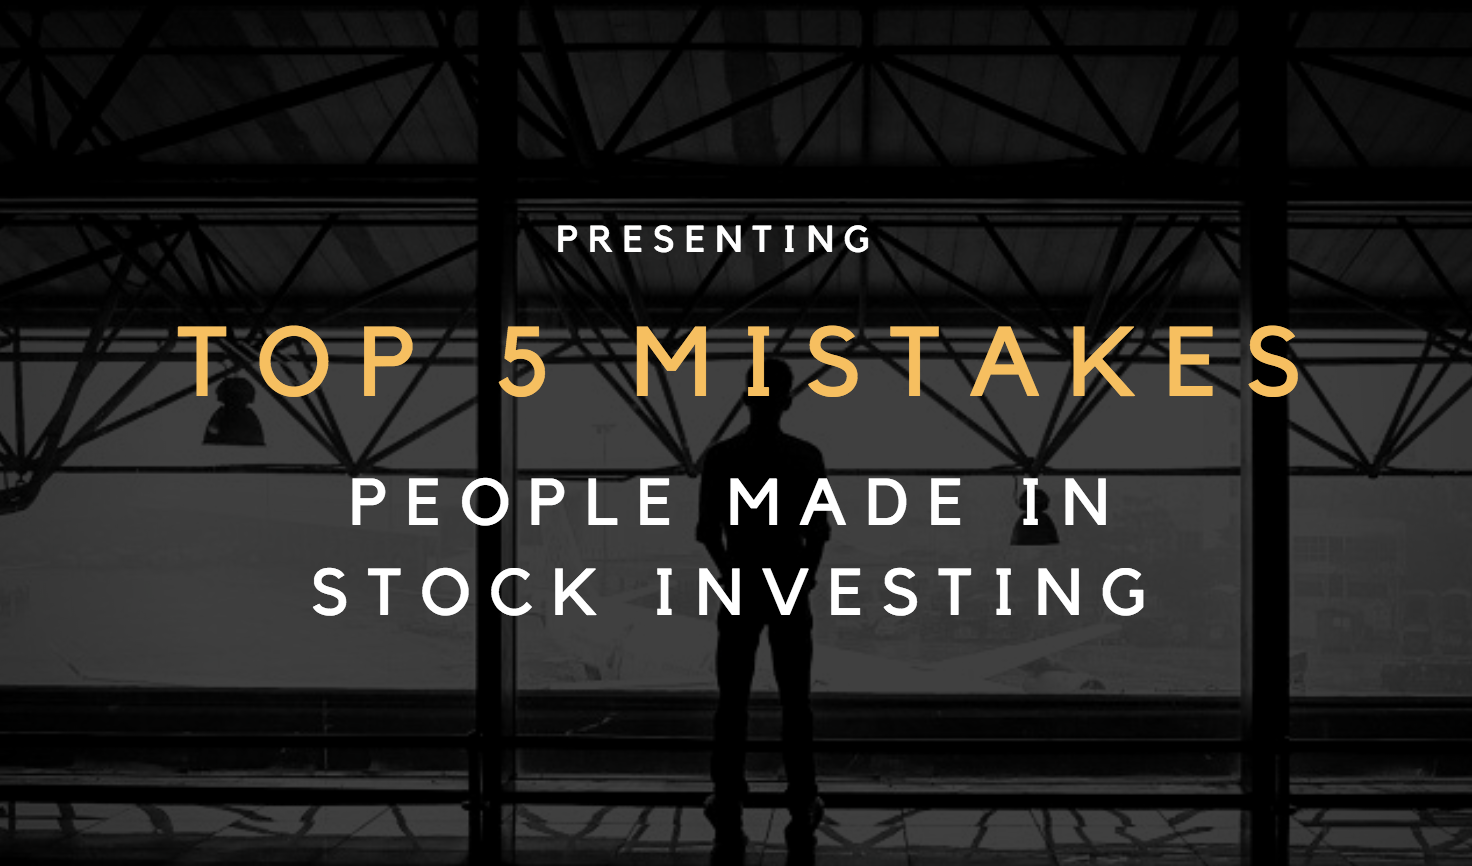 Top 5 Mistakes People Made in Stock Investing